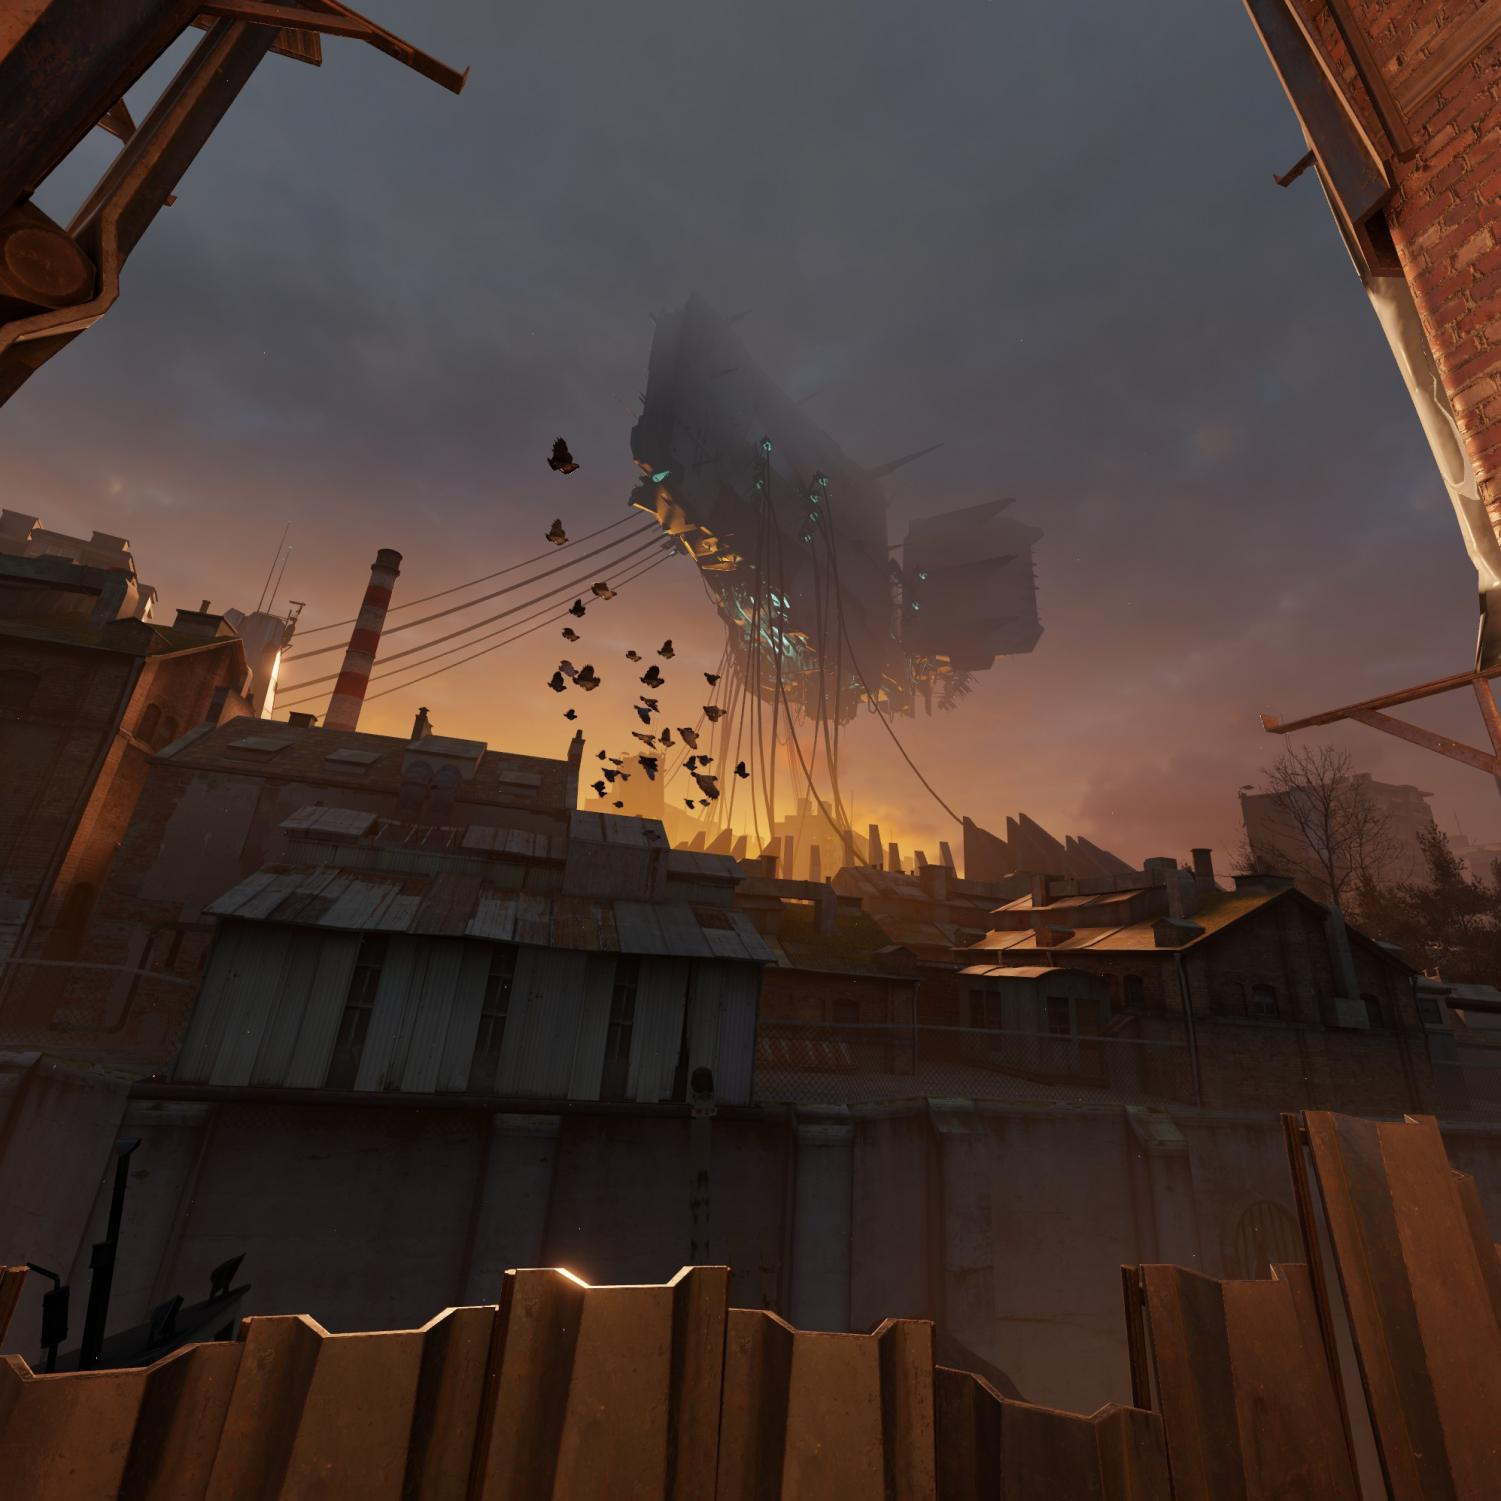 """Alyx""'s story centers around stealing a superweapon from the sky-suspended Vault, pictured. It's not as substantial a story as the game thinks it is."